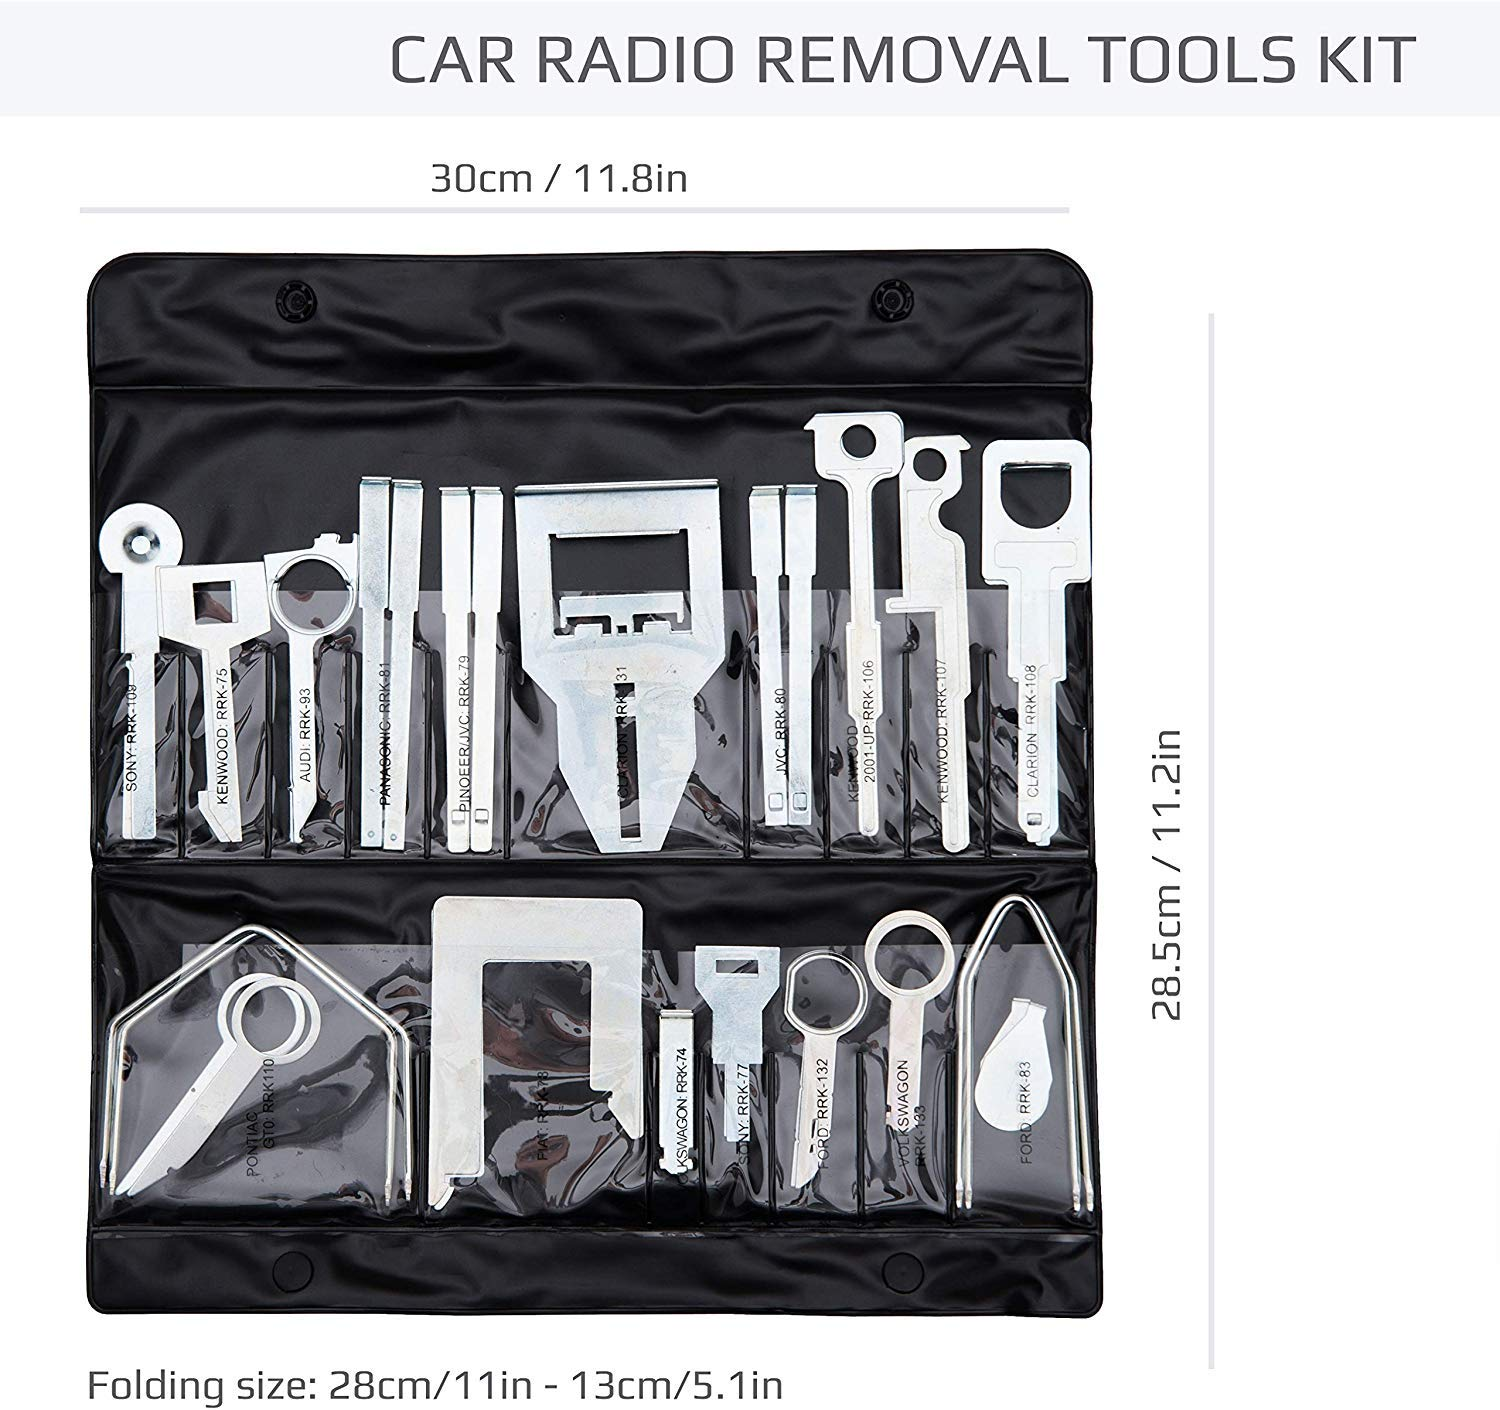 Pack of 38 Keple 38 Pcs Car Radio Release Keys Set Vehicle Panel Stereo Removal Trim Tool Kit Compatible with Audio GPS CD Player Radio Head Unit Navigation Installation Disassembly Tools